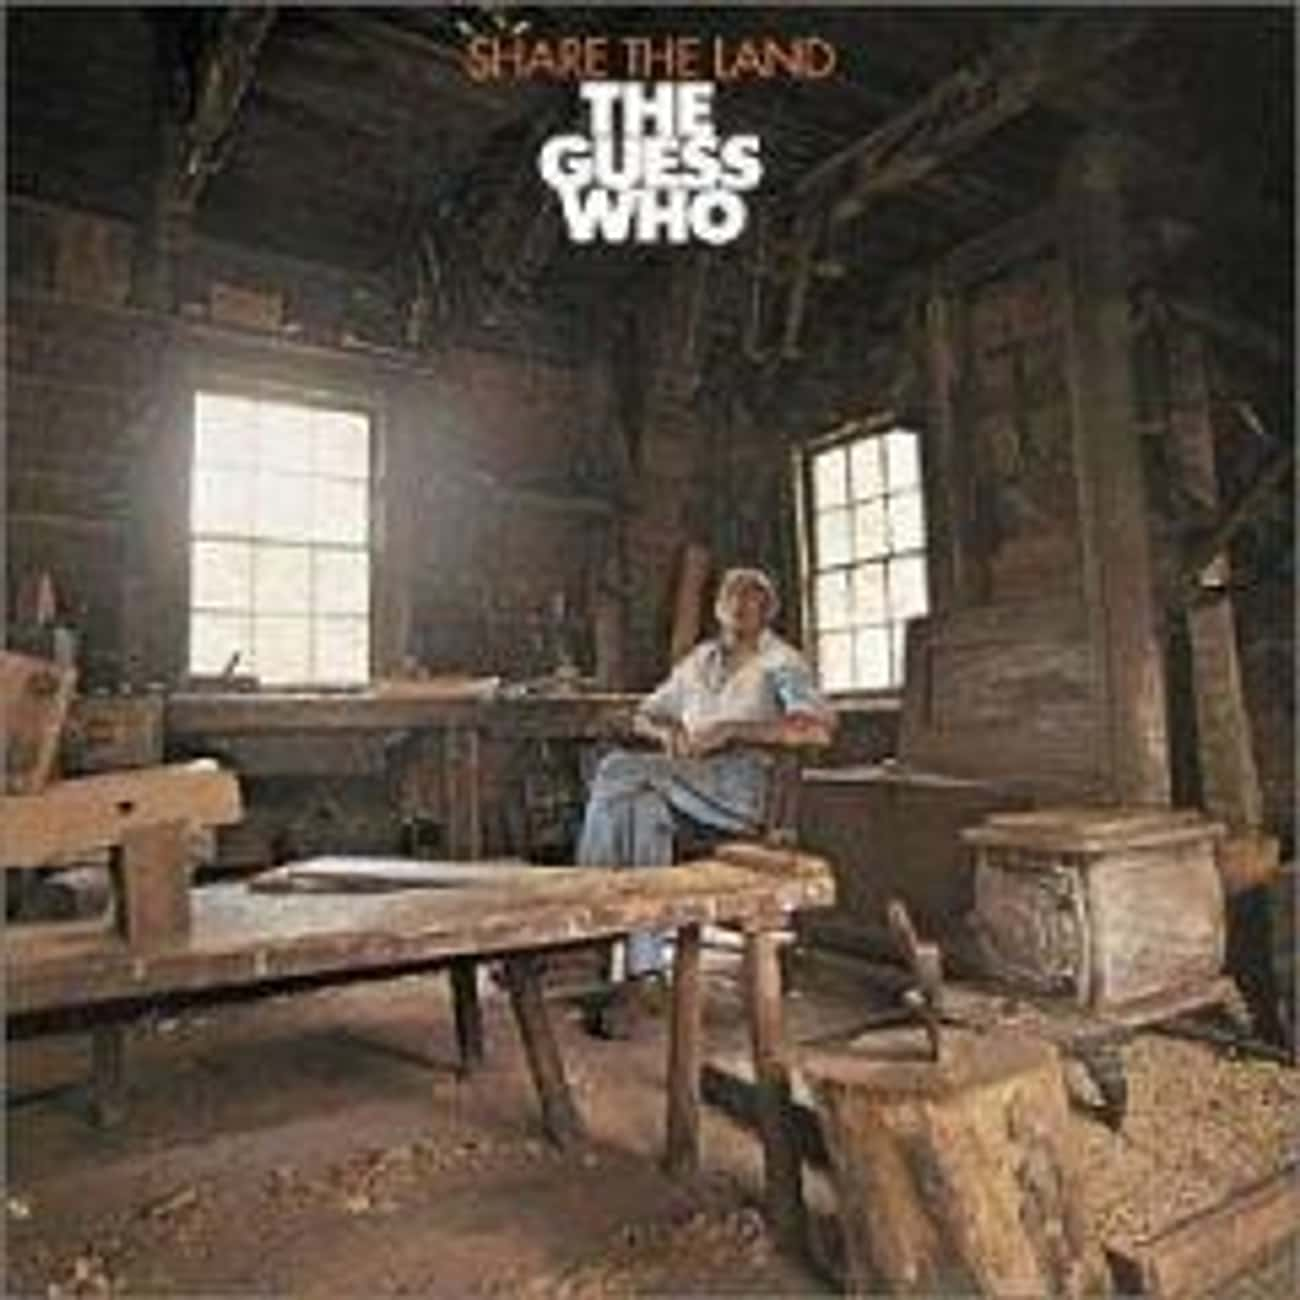 Share the Land is listed (or ranked) 1 on the list The Best Guess Who Albums of All Time